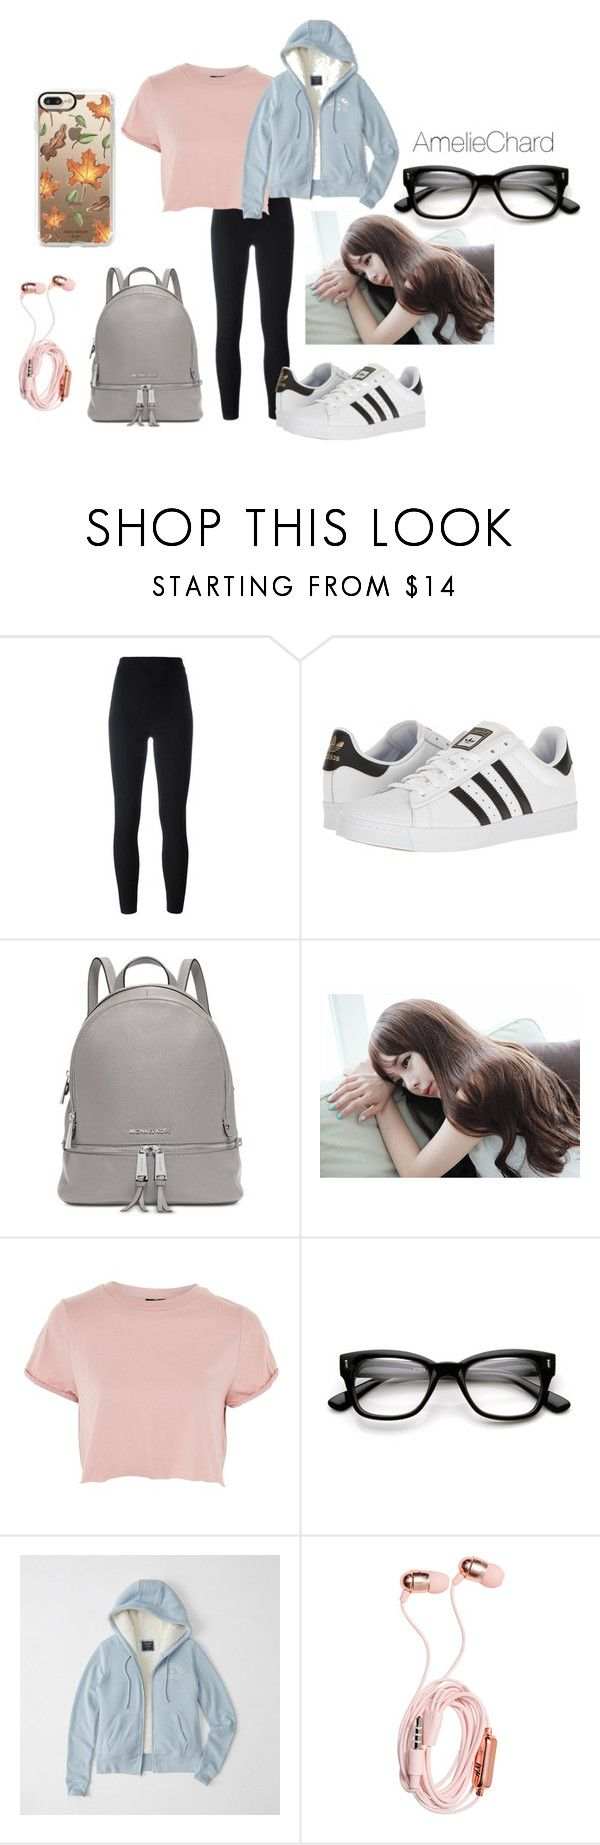 """""""Chapter 25 Bellatrix's Outfit"""" by featherofdarkness on Polyvore featuring Yeezy by Kanye West, adidas, Michael Kors, GABALNARA, Topshop, ZeroUV, Abercrombie & Fitch and Casetify"""